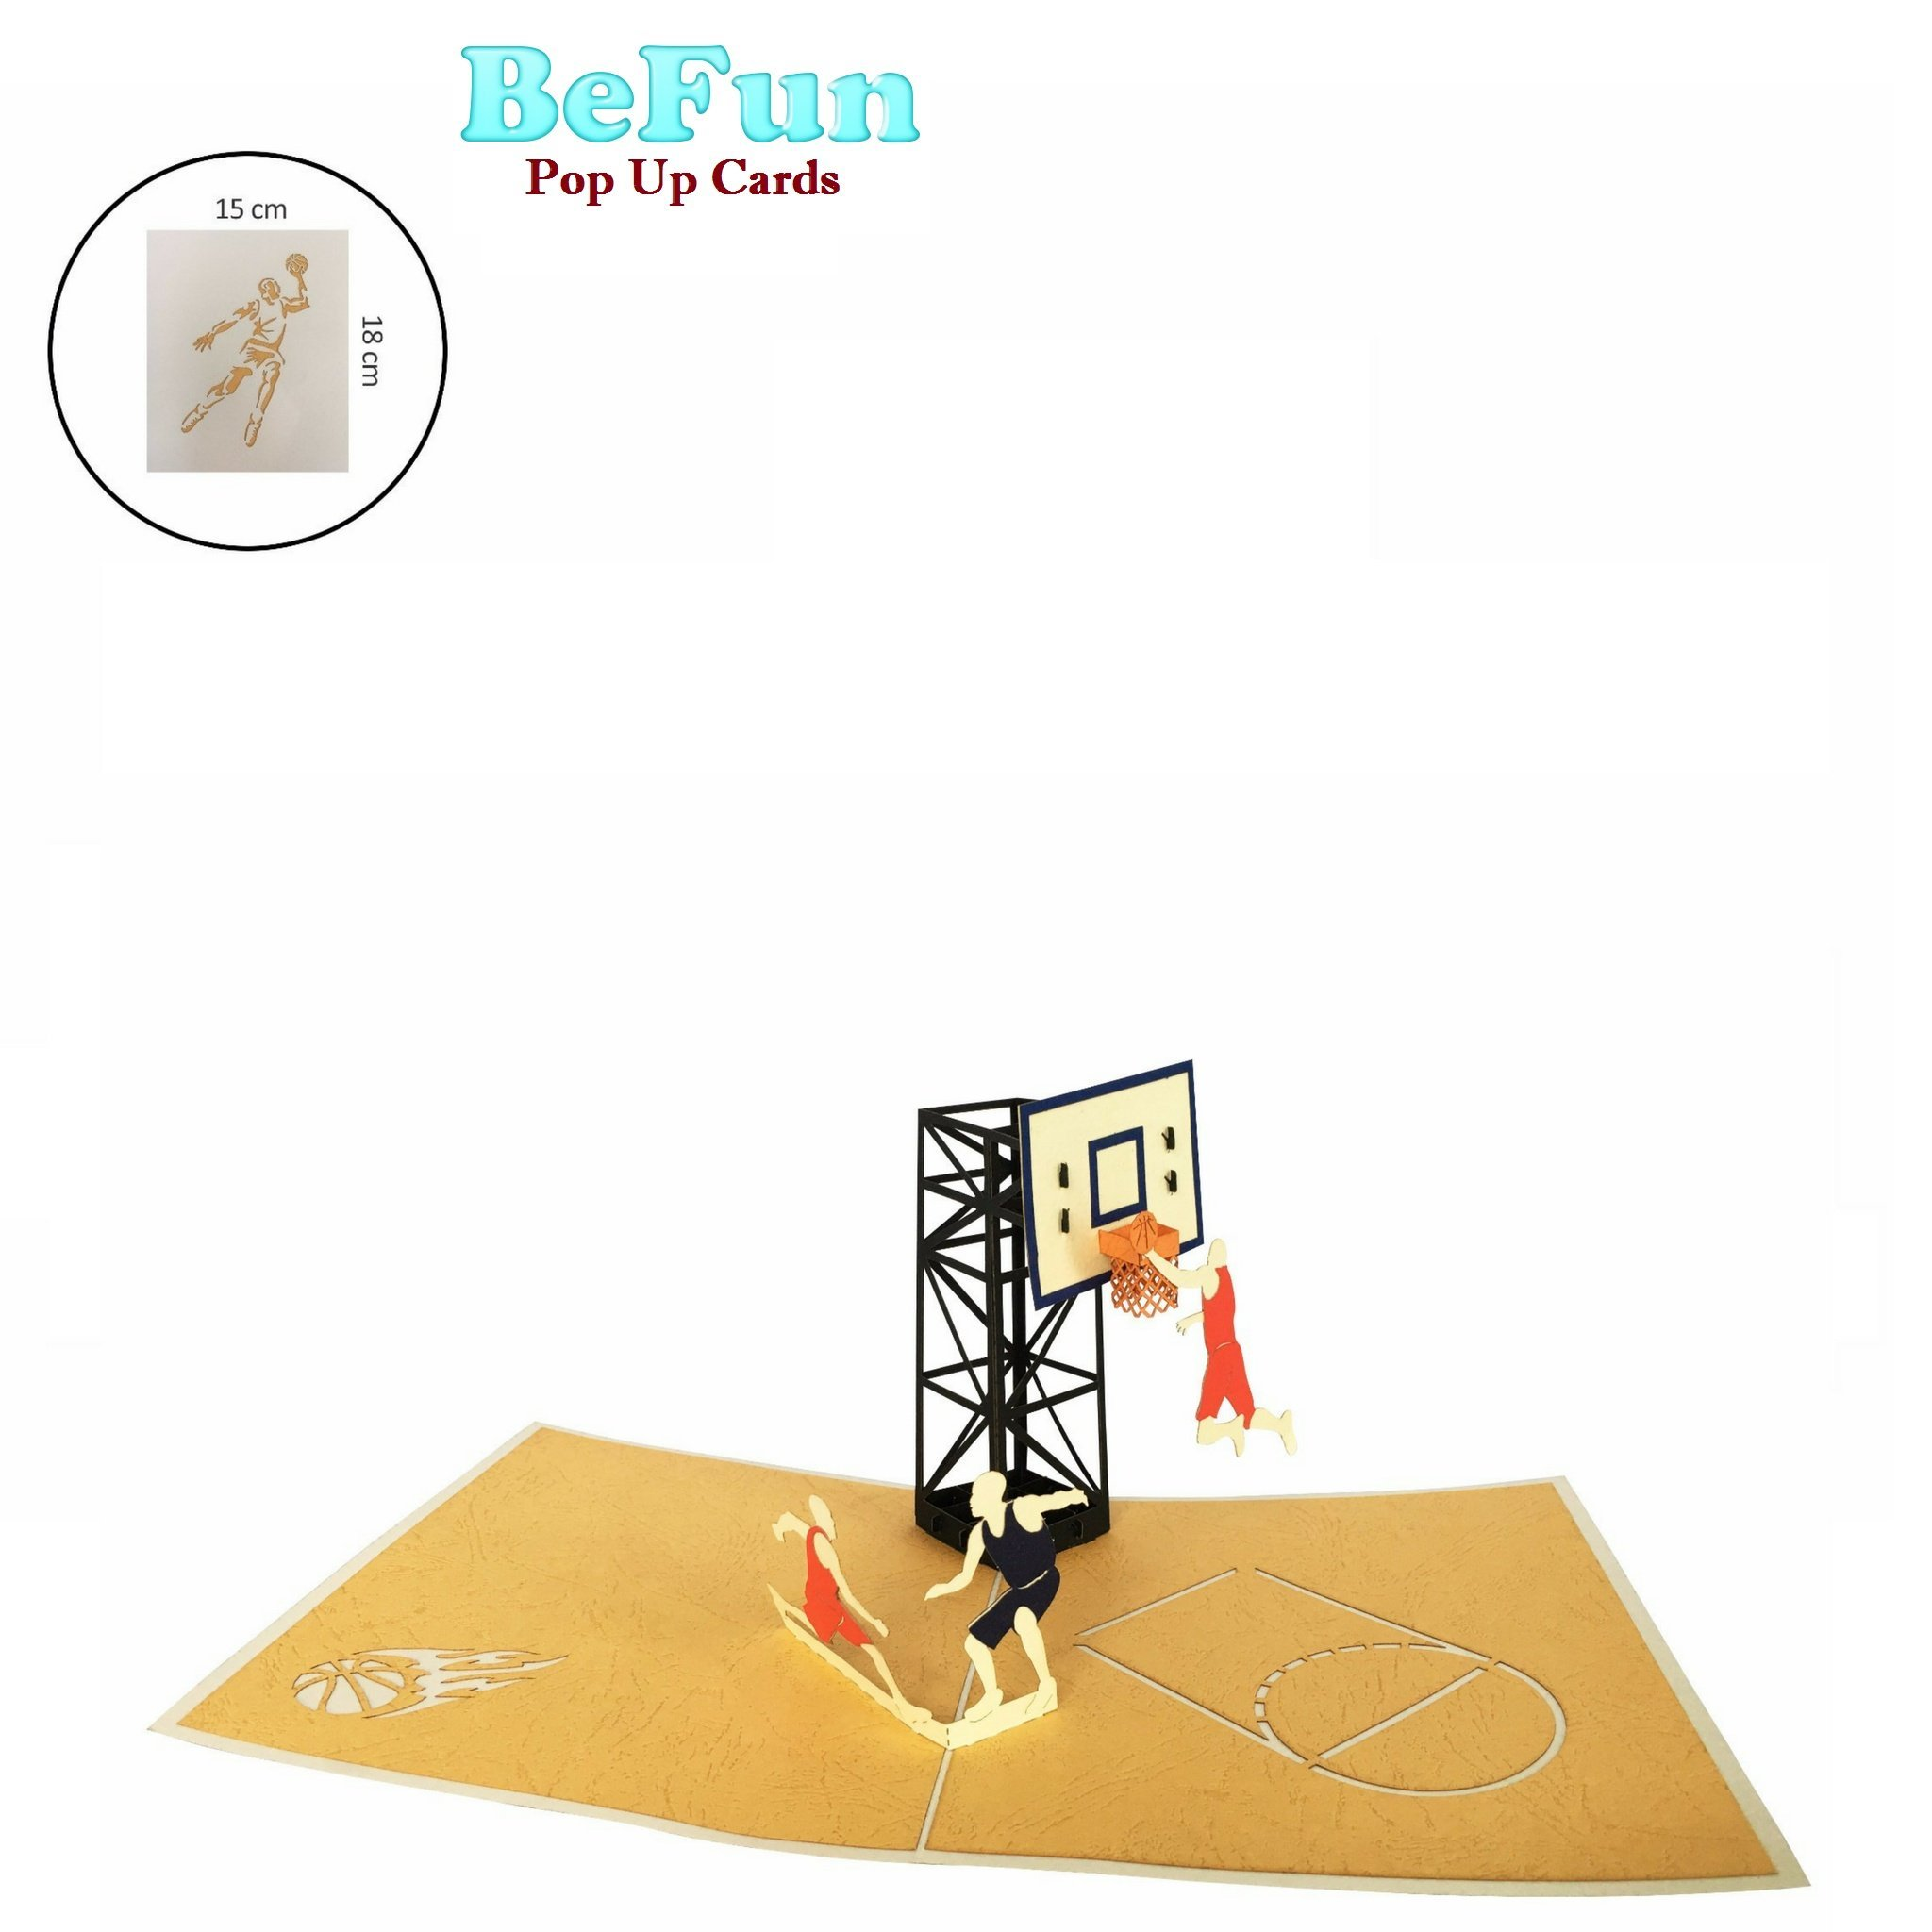 Be Fun Pop Up Greeting Cards for Men on Birthday-Congratulation- The Sports Fans Store for Basketball